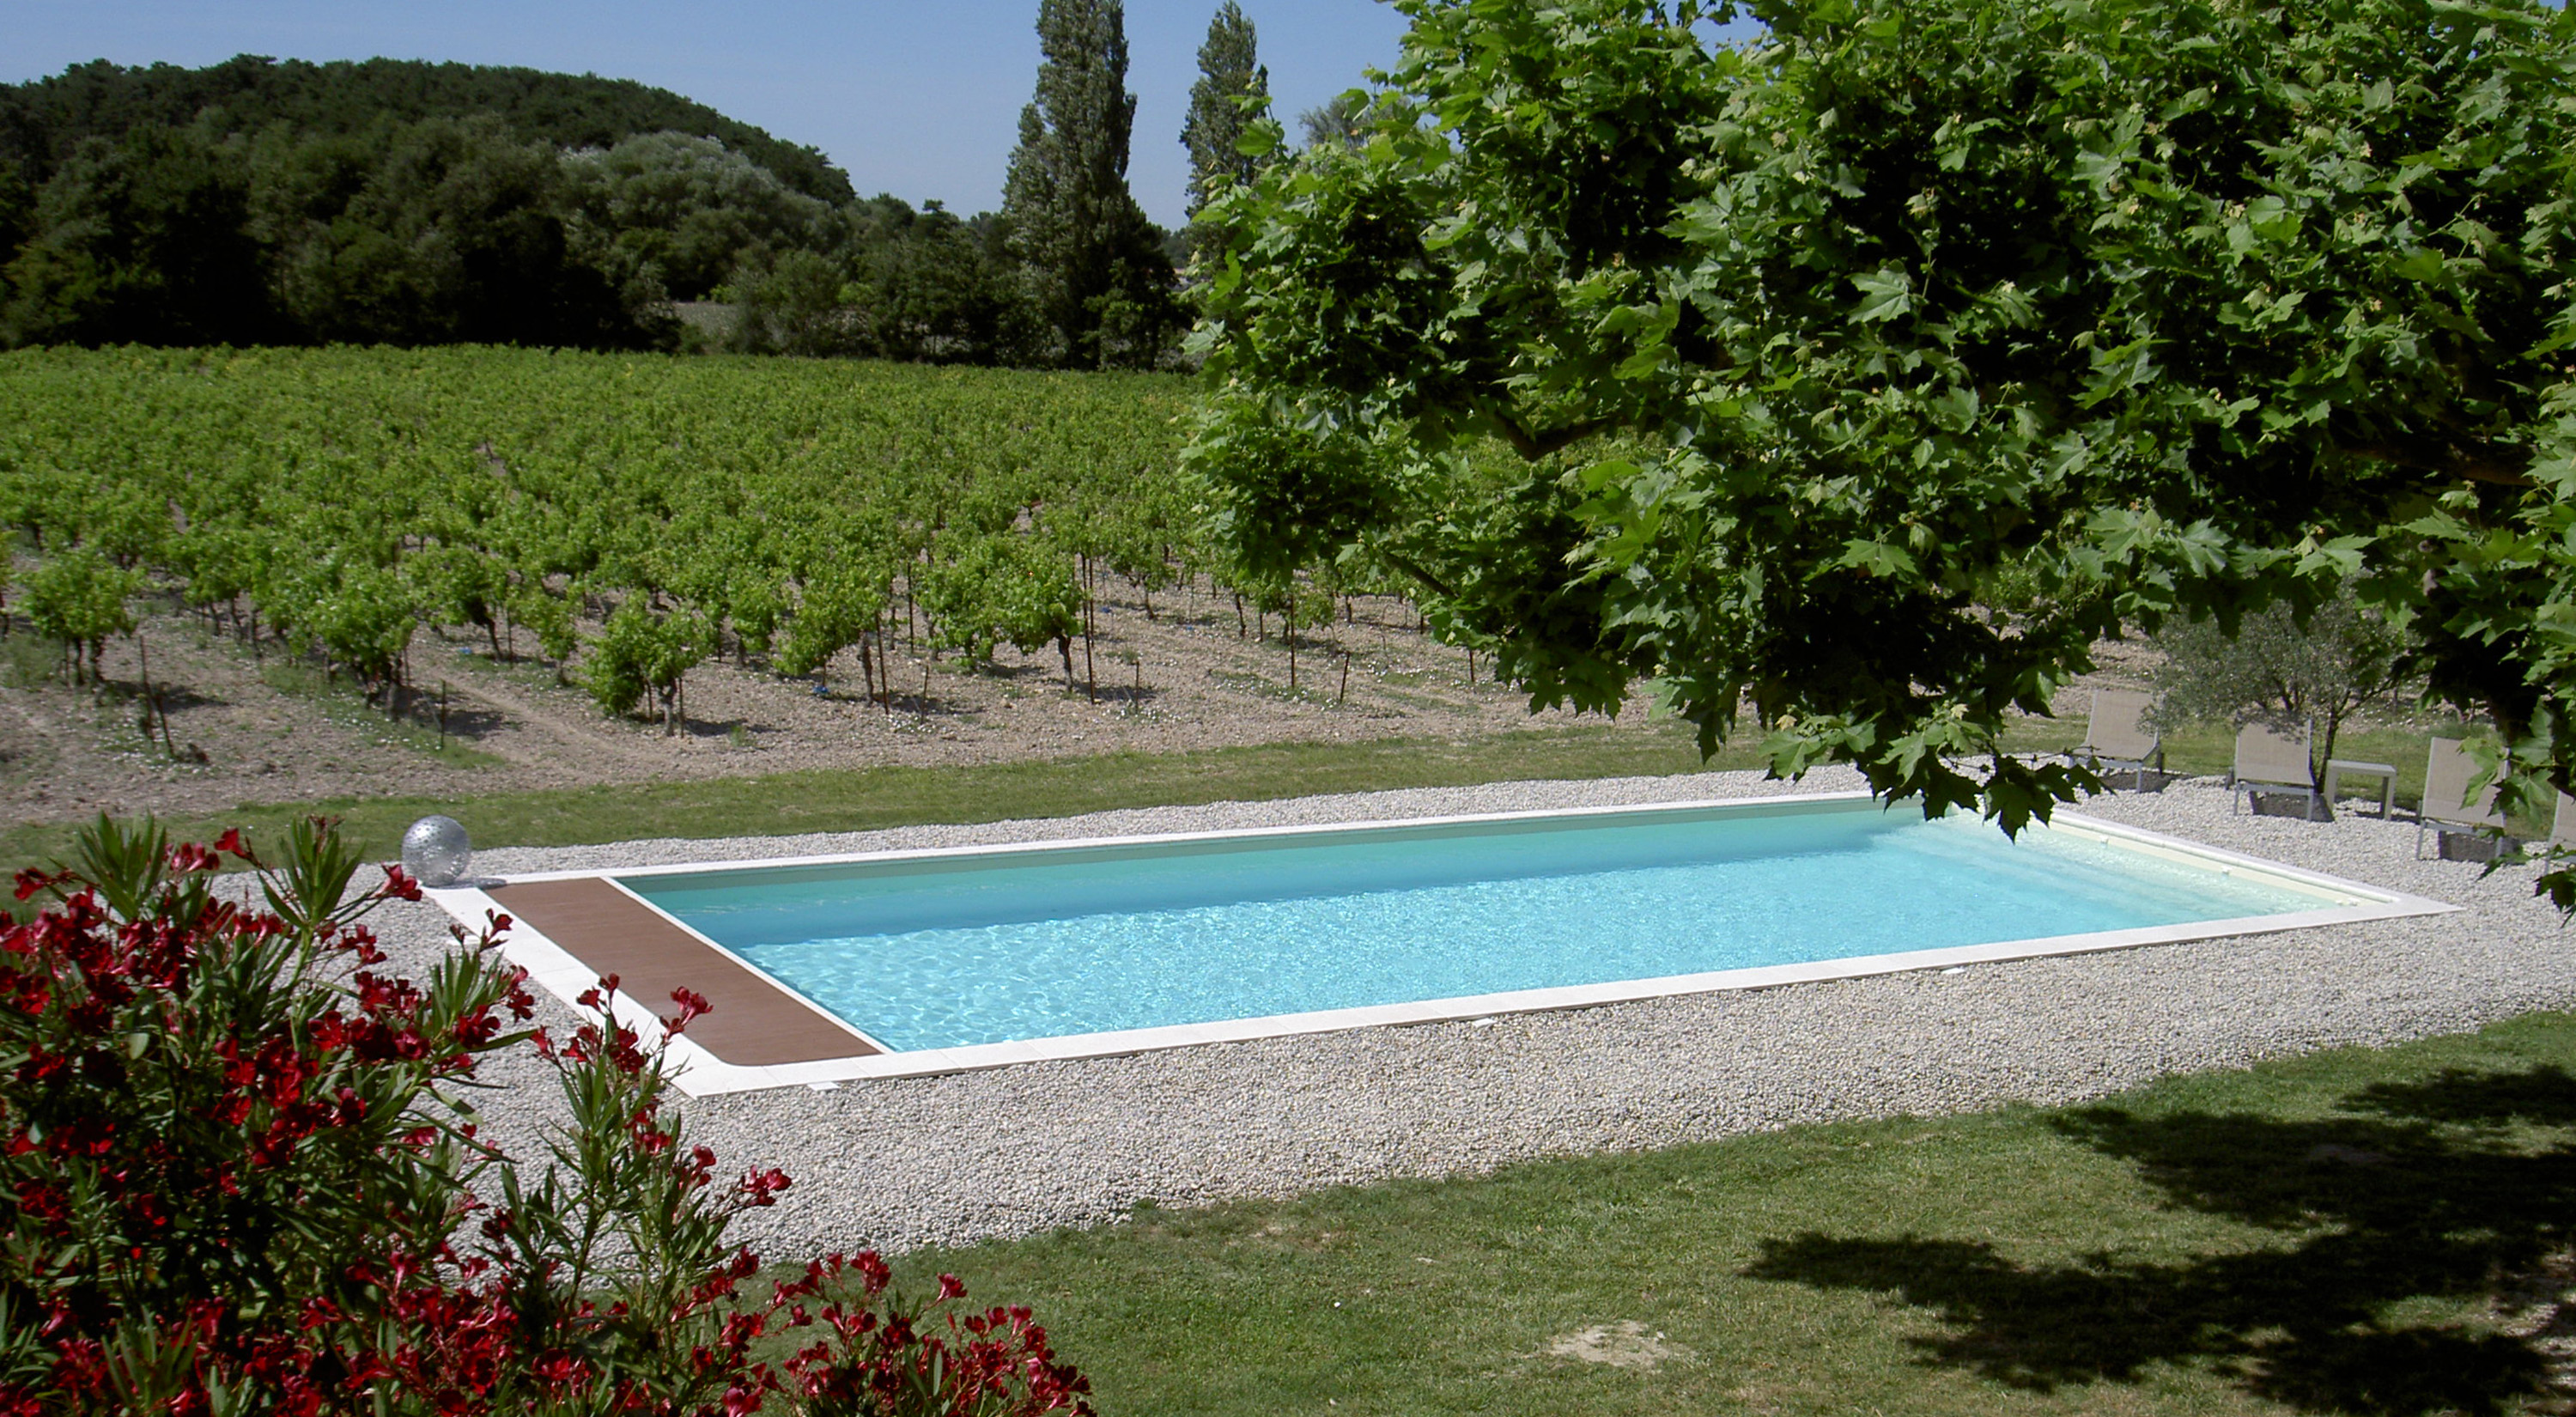 Swimming pool in the middle of the vineyard